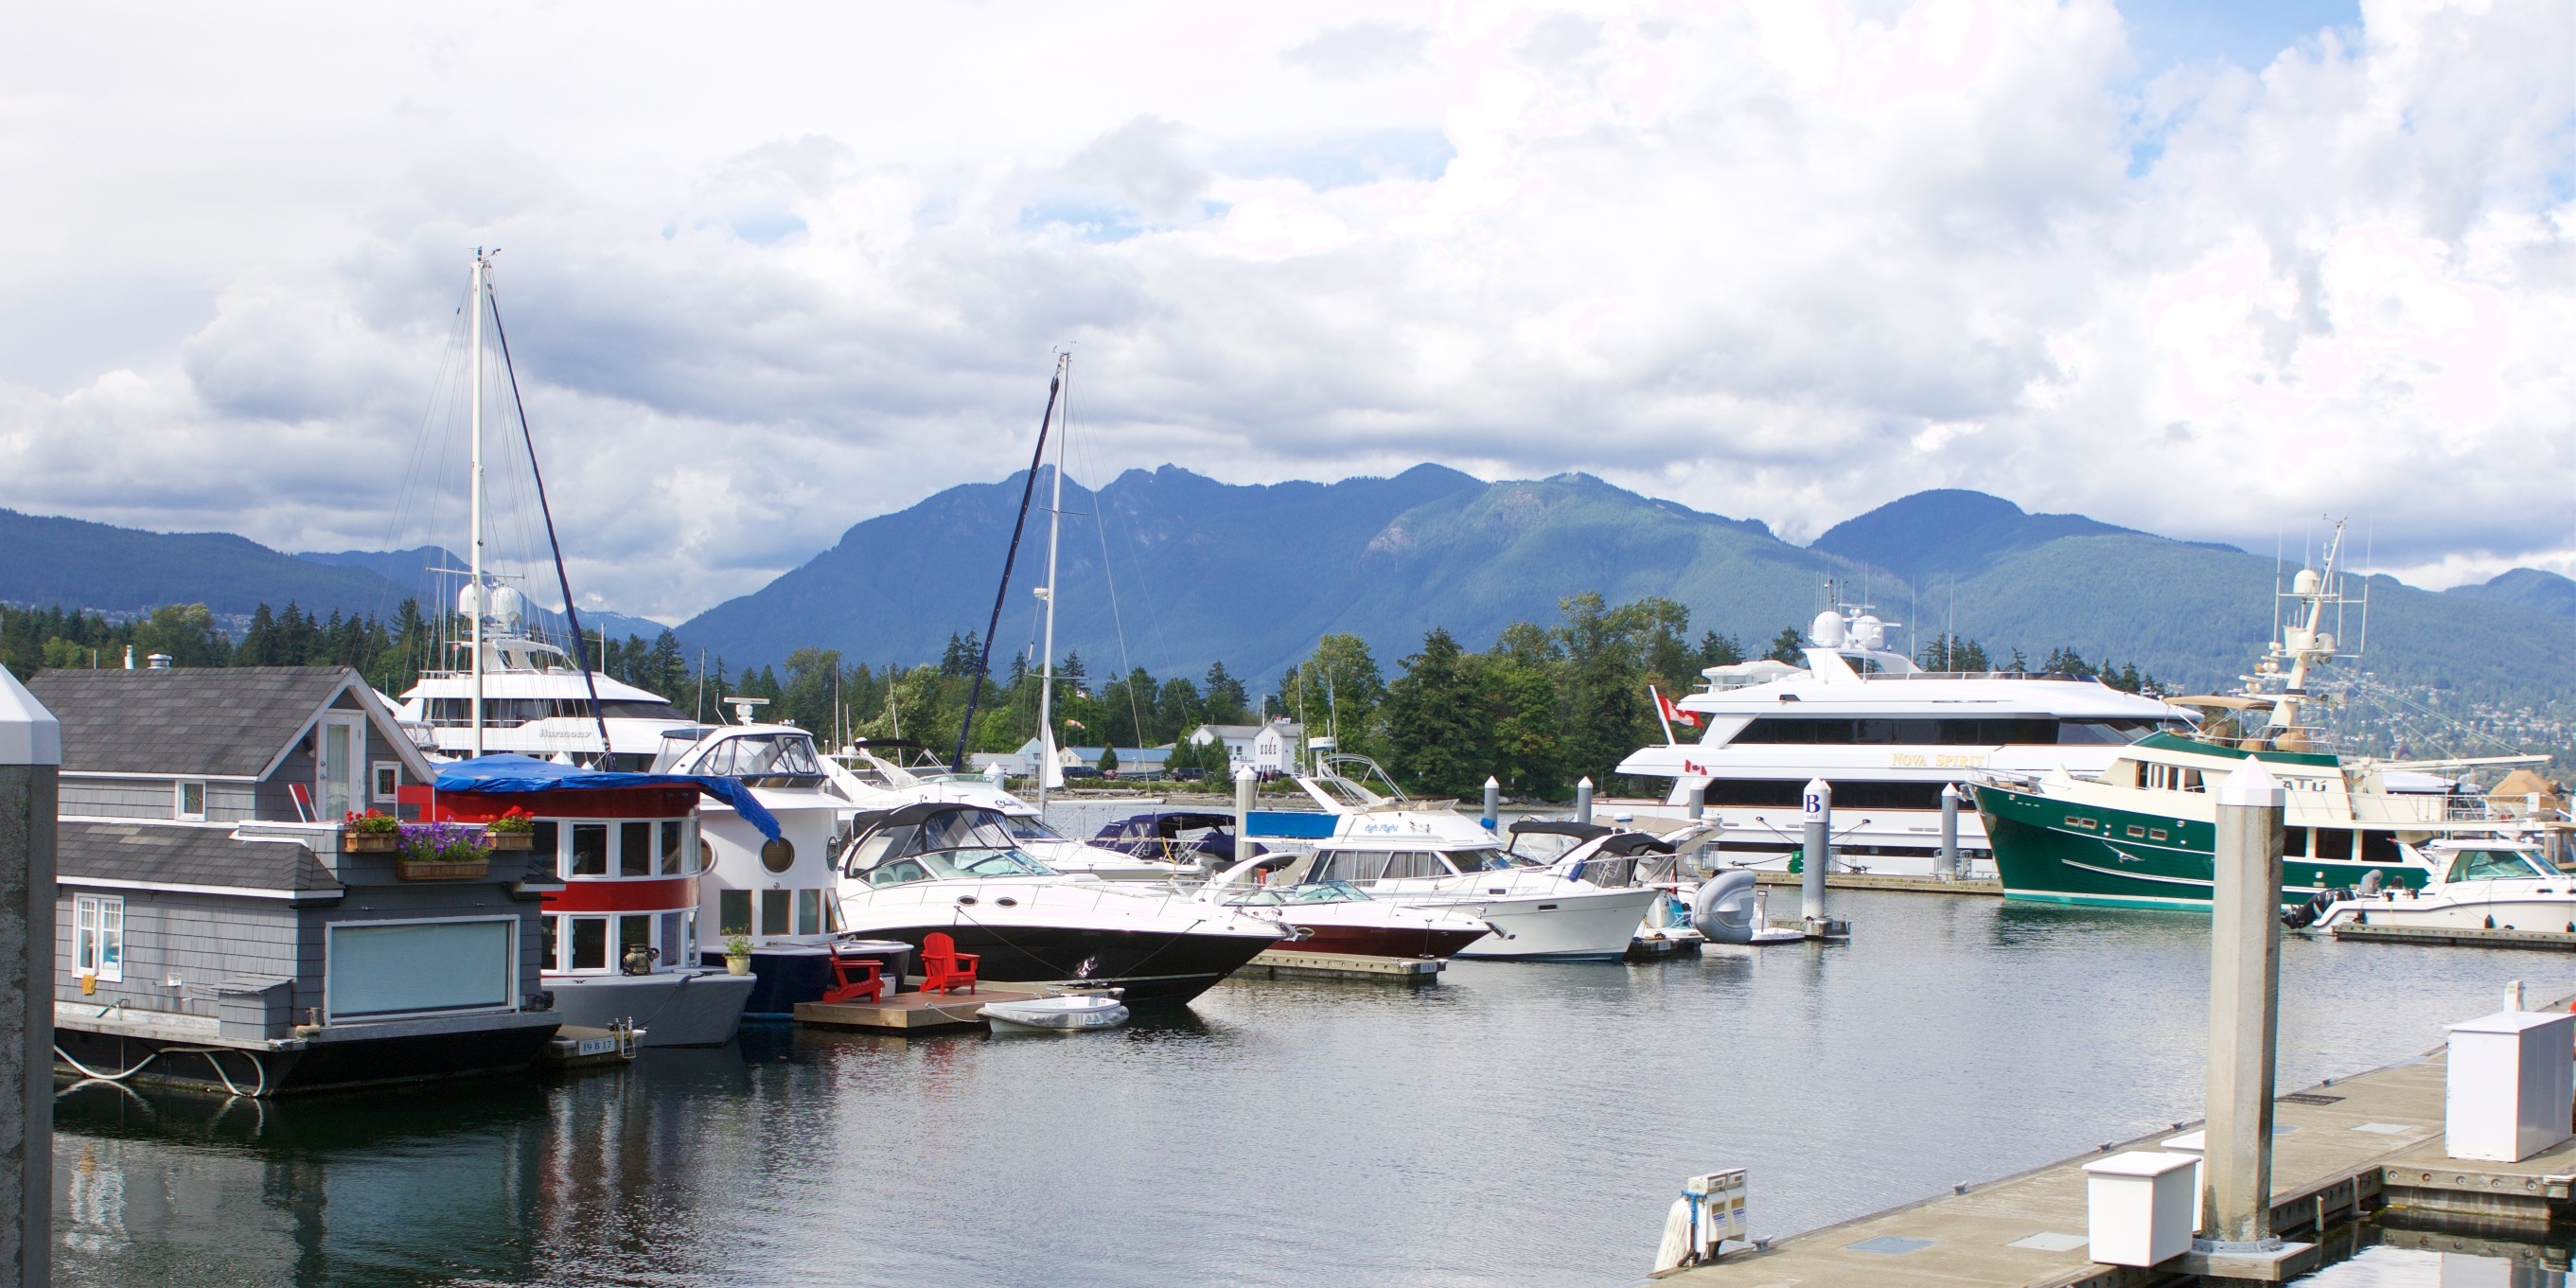 Vancouver Coal Harbour with mountain view water and boats